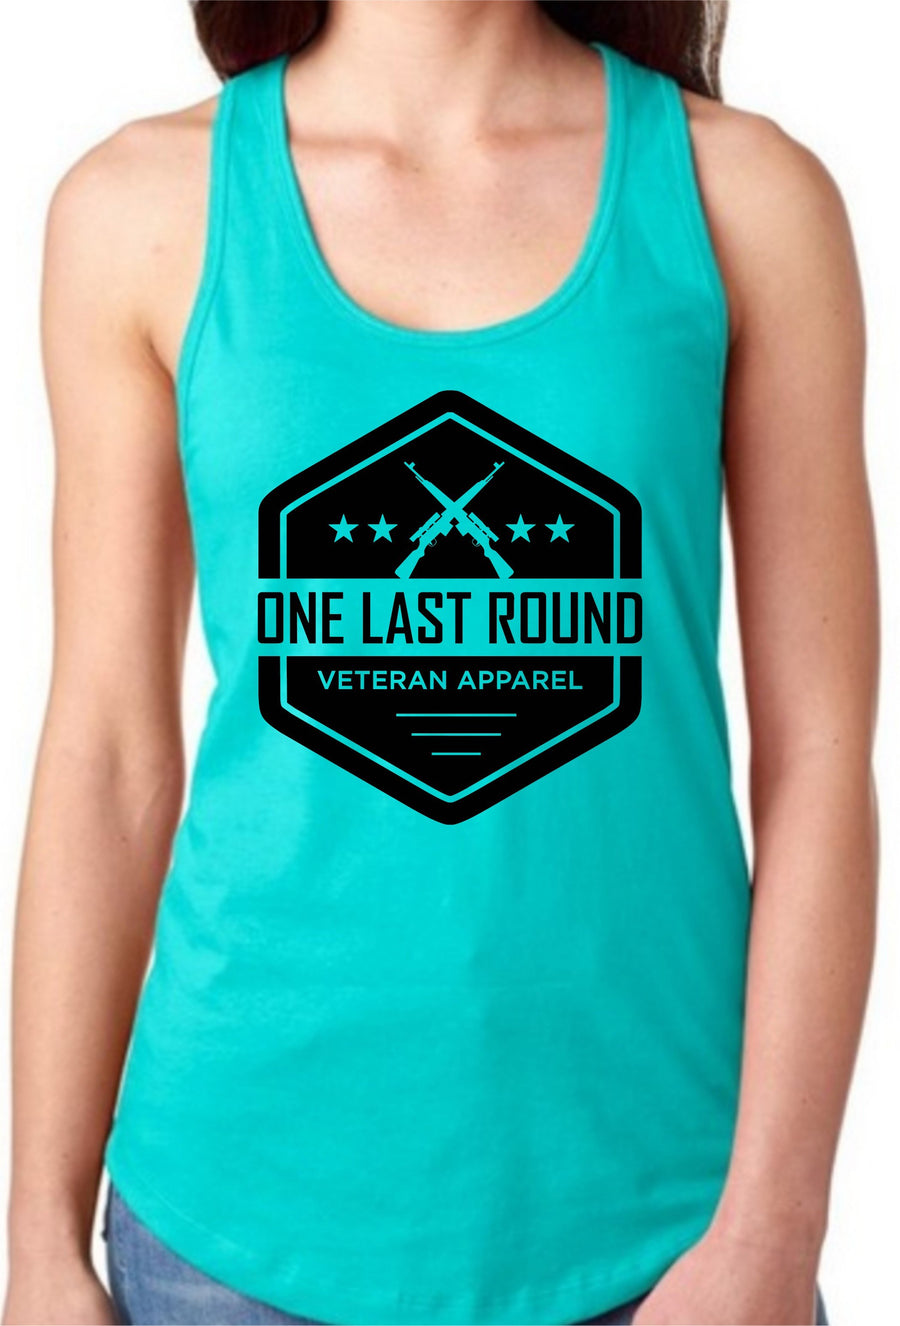 OLR Hex Racerback - One Last Round Apparel